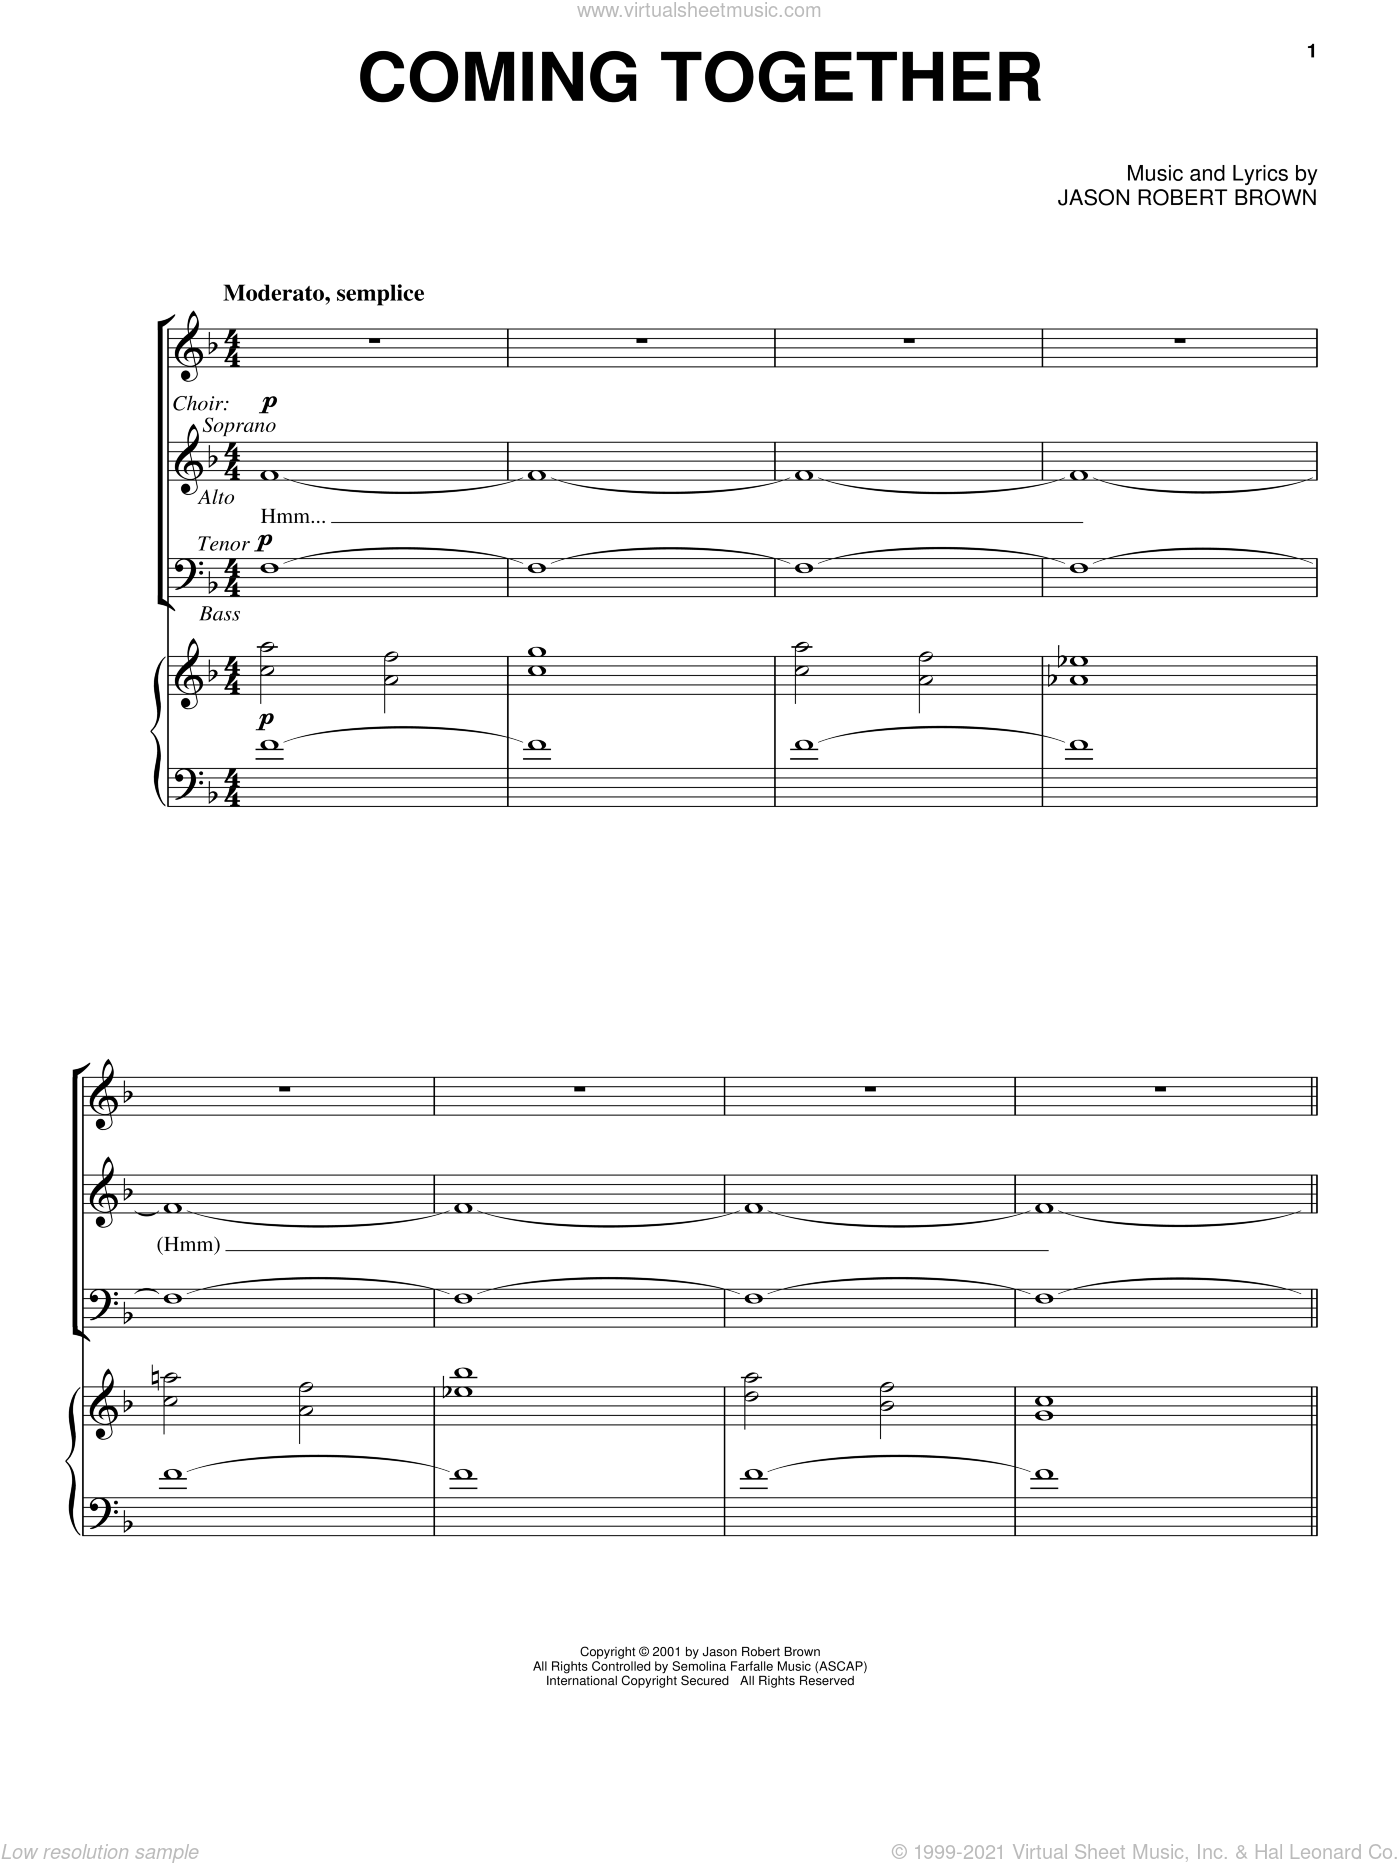 Coming Together (from Wearing Someone Else's Clothes) sheet music for voice and piano by Jason Robert Brown, intermediate skill level